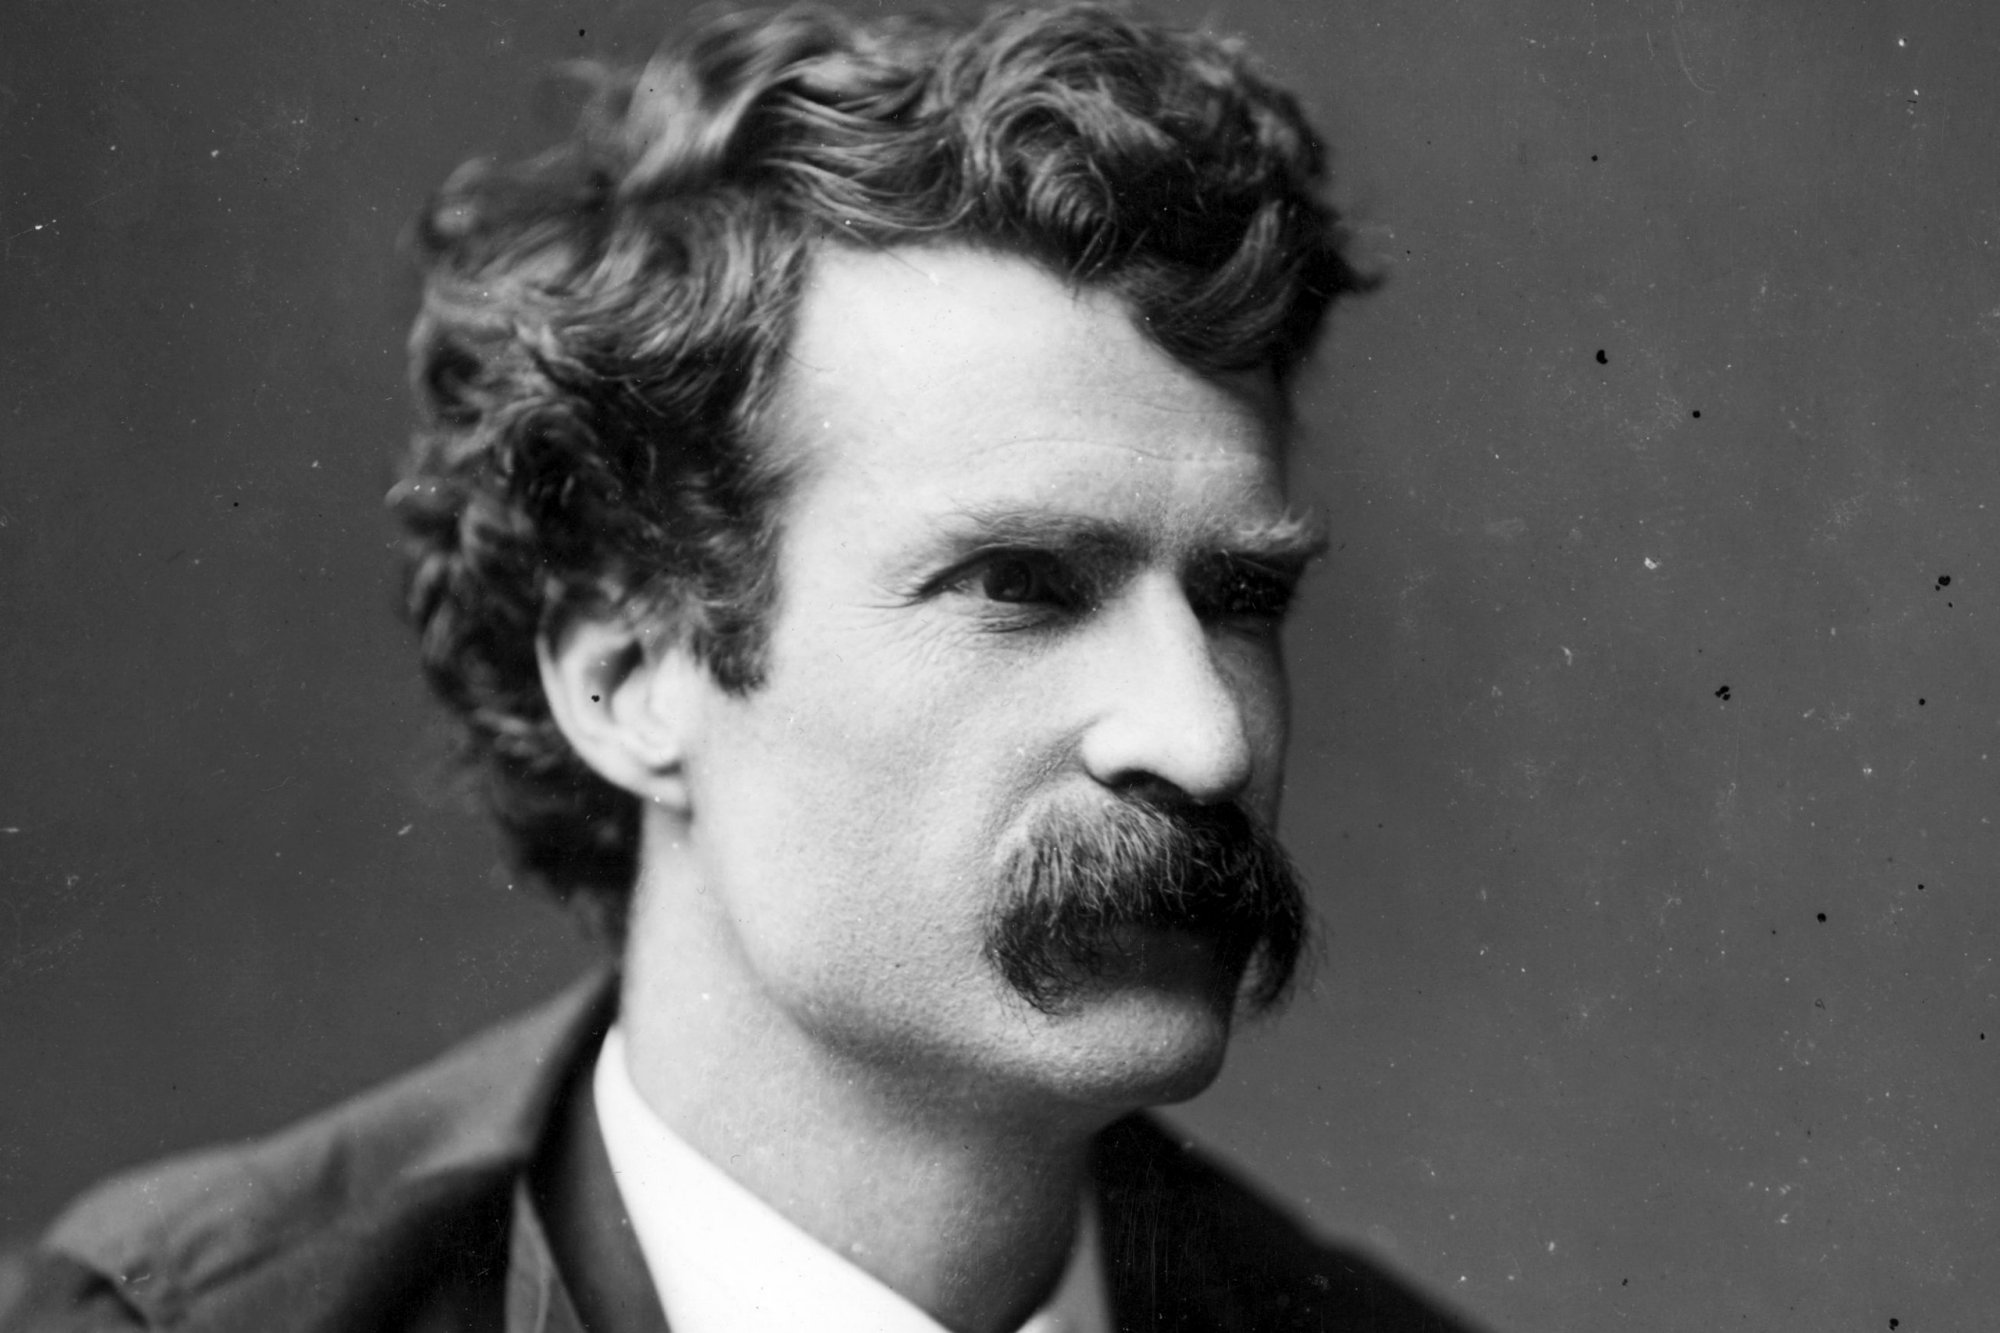 Books By Mark Twain 11 Hd Wallpaper   Hot Celebrities Wallpapers 2000x1333